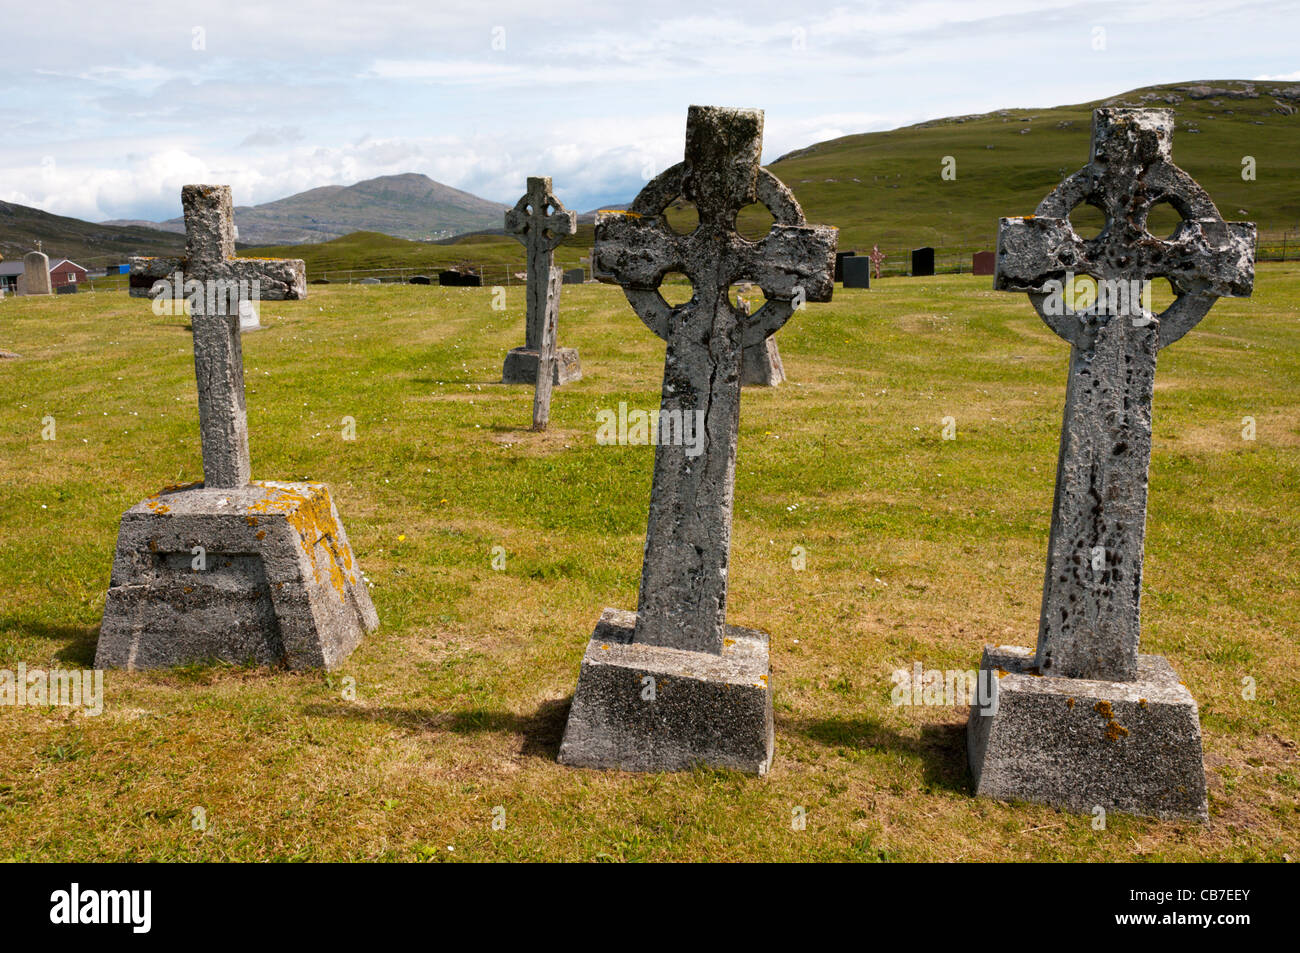 Crosses in the burial ground on the island of Vatersay in the Outer Hebrides, Scotland - Stock Image